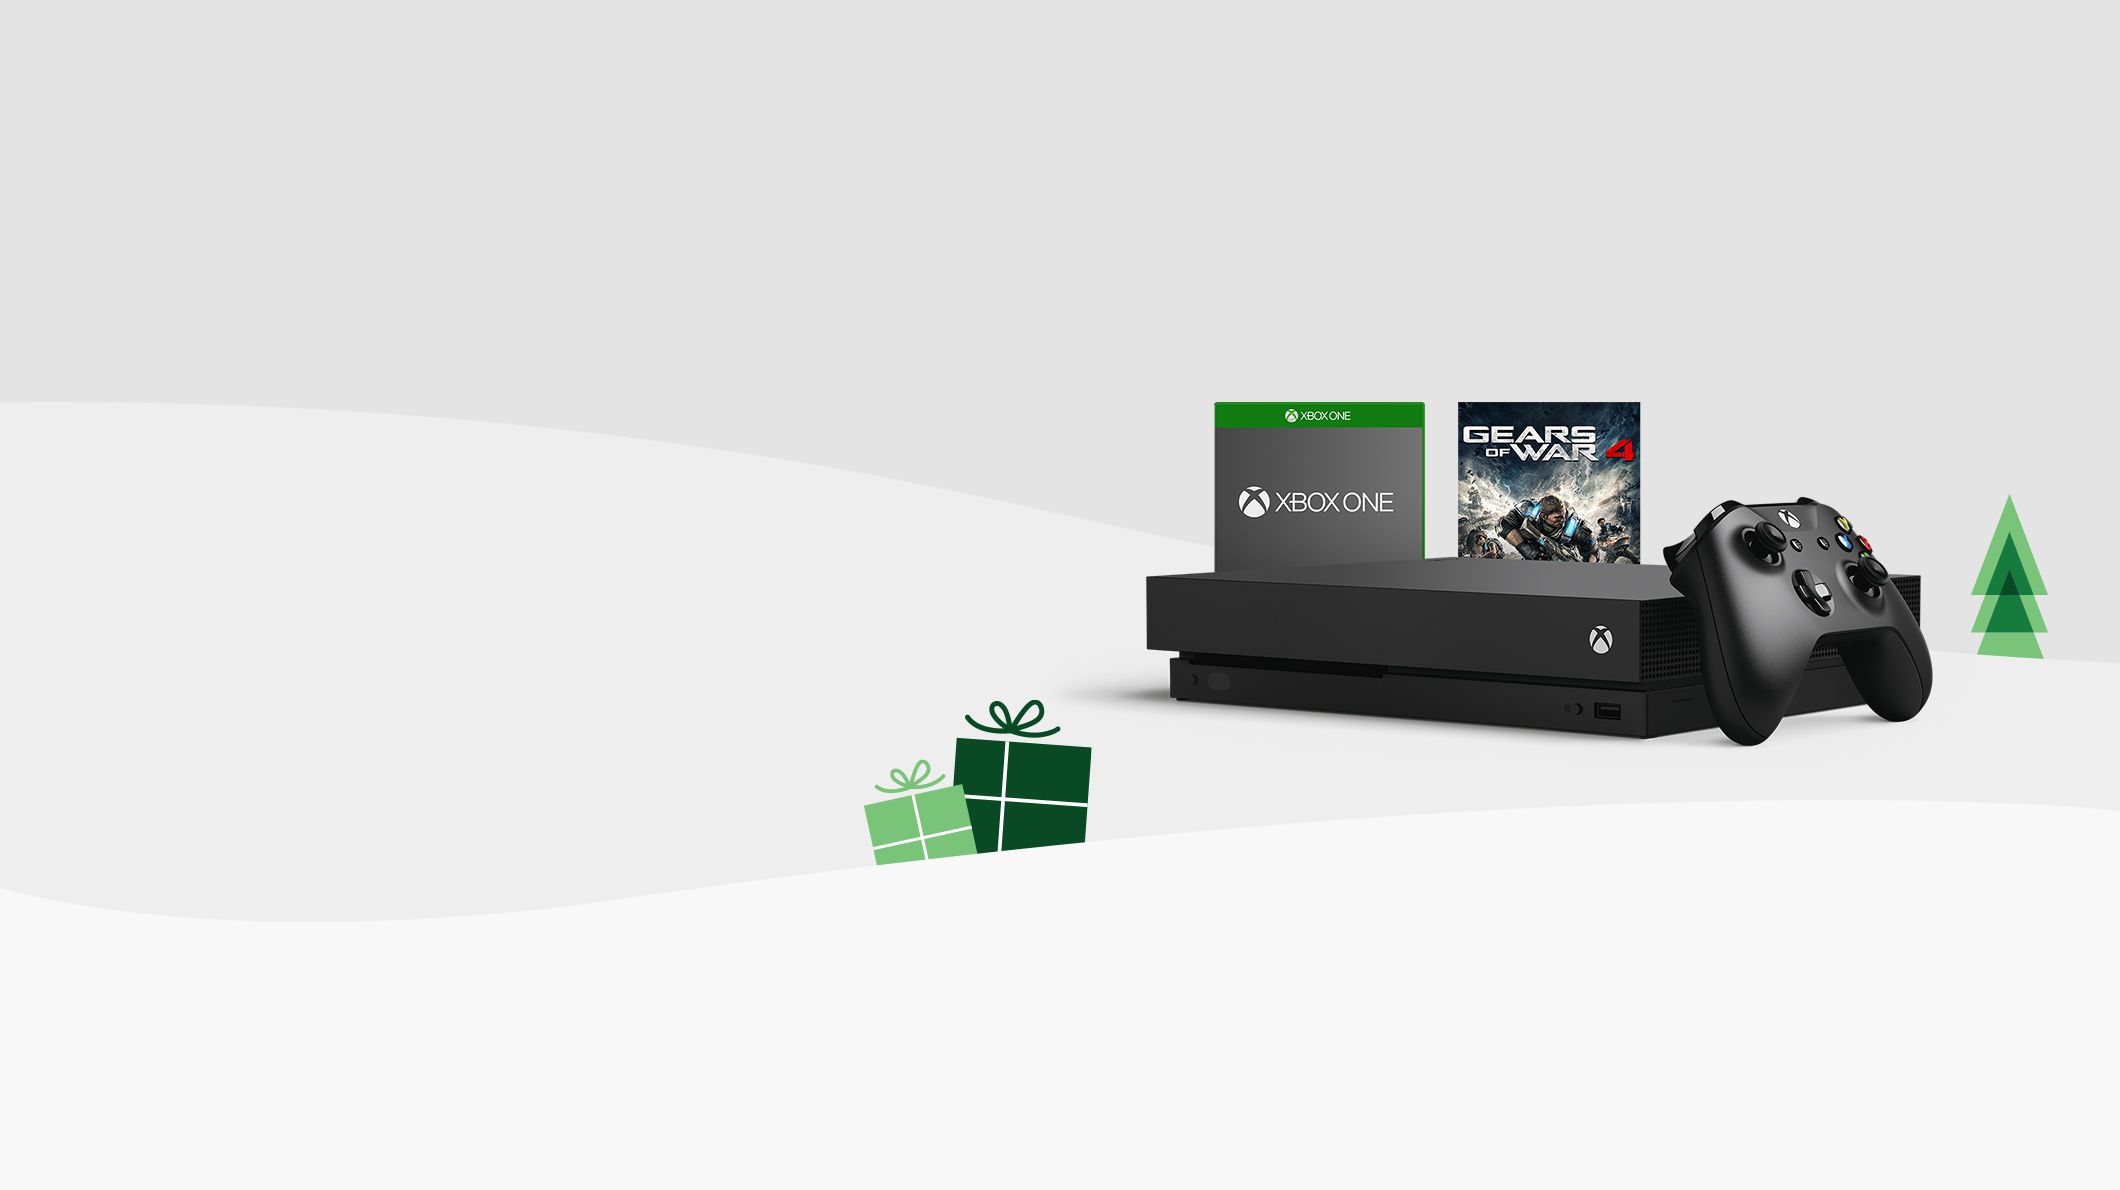 Xbox One X and wireless controller, Gears of War 4 box art, Xbox One game box art